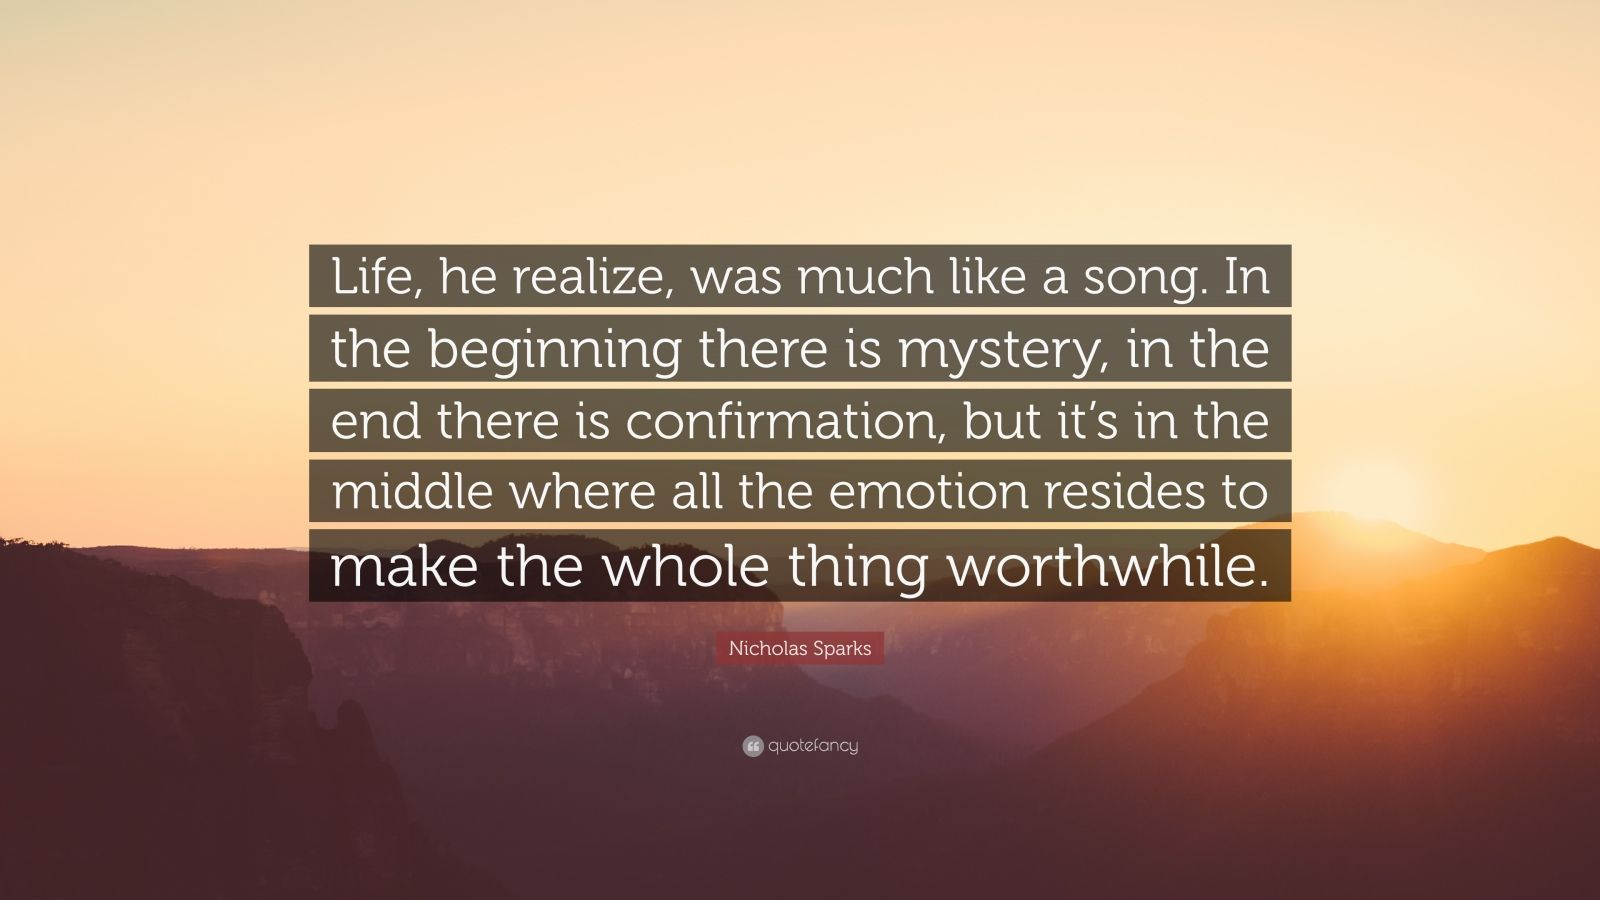 "Nicholas Sparks Quote: ""Life, he realize, was much like a song. In the beginning there is mystery, in the end there is confirmation, but it's in the middle where all the emotion resides to make the whole thing worthwhile."""